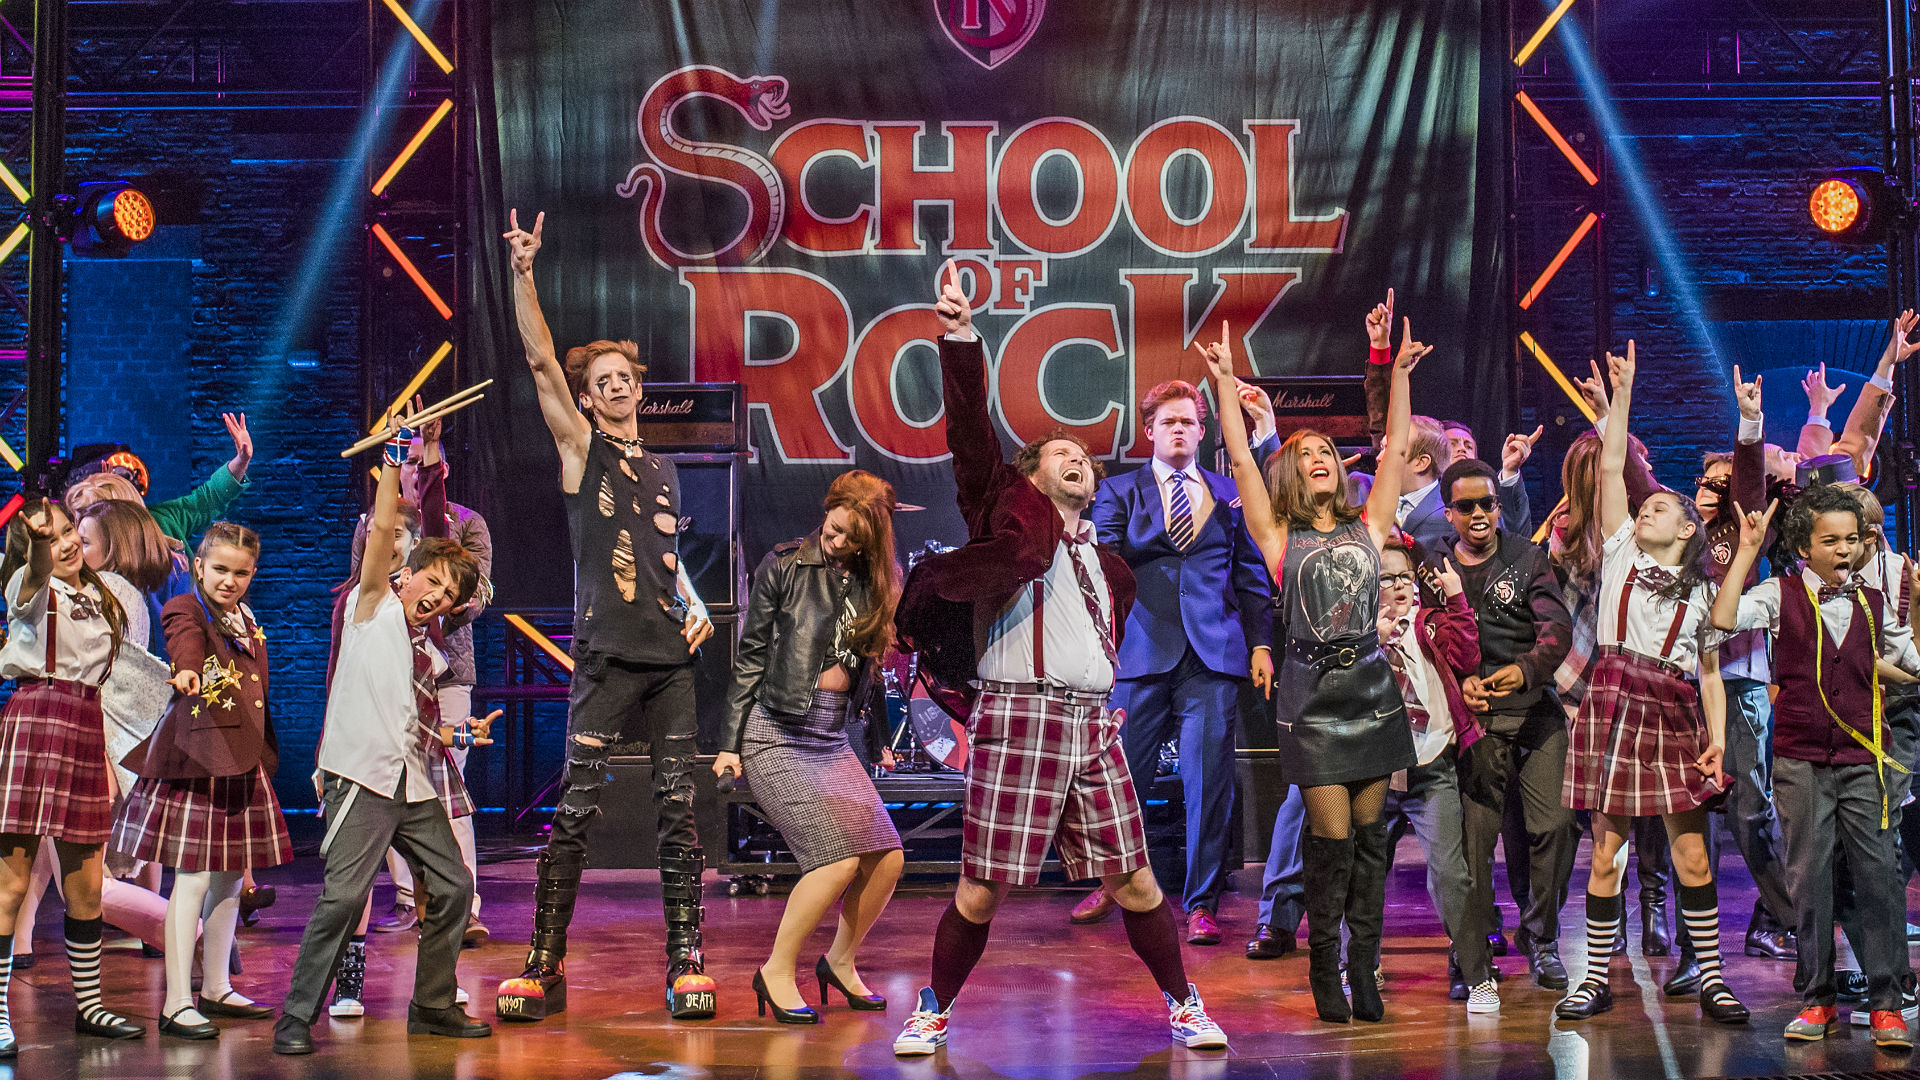 School of Rock at the New London Theatre. Image: Tristram Kenton